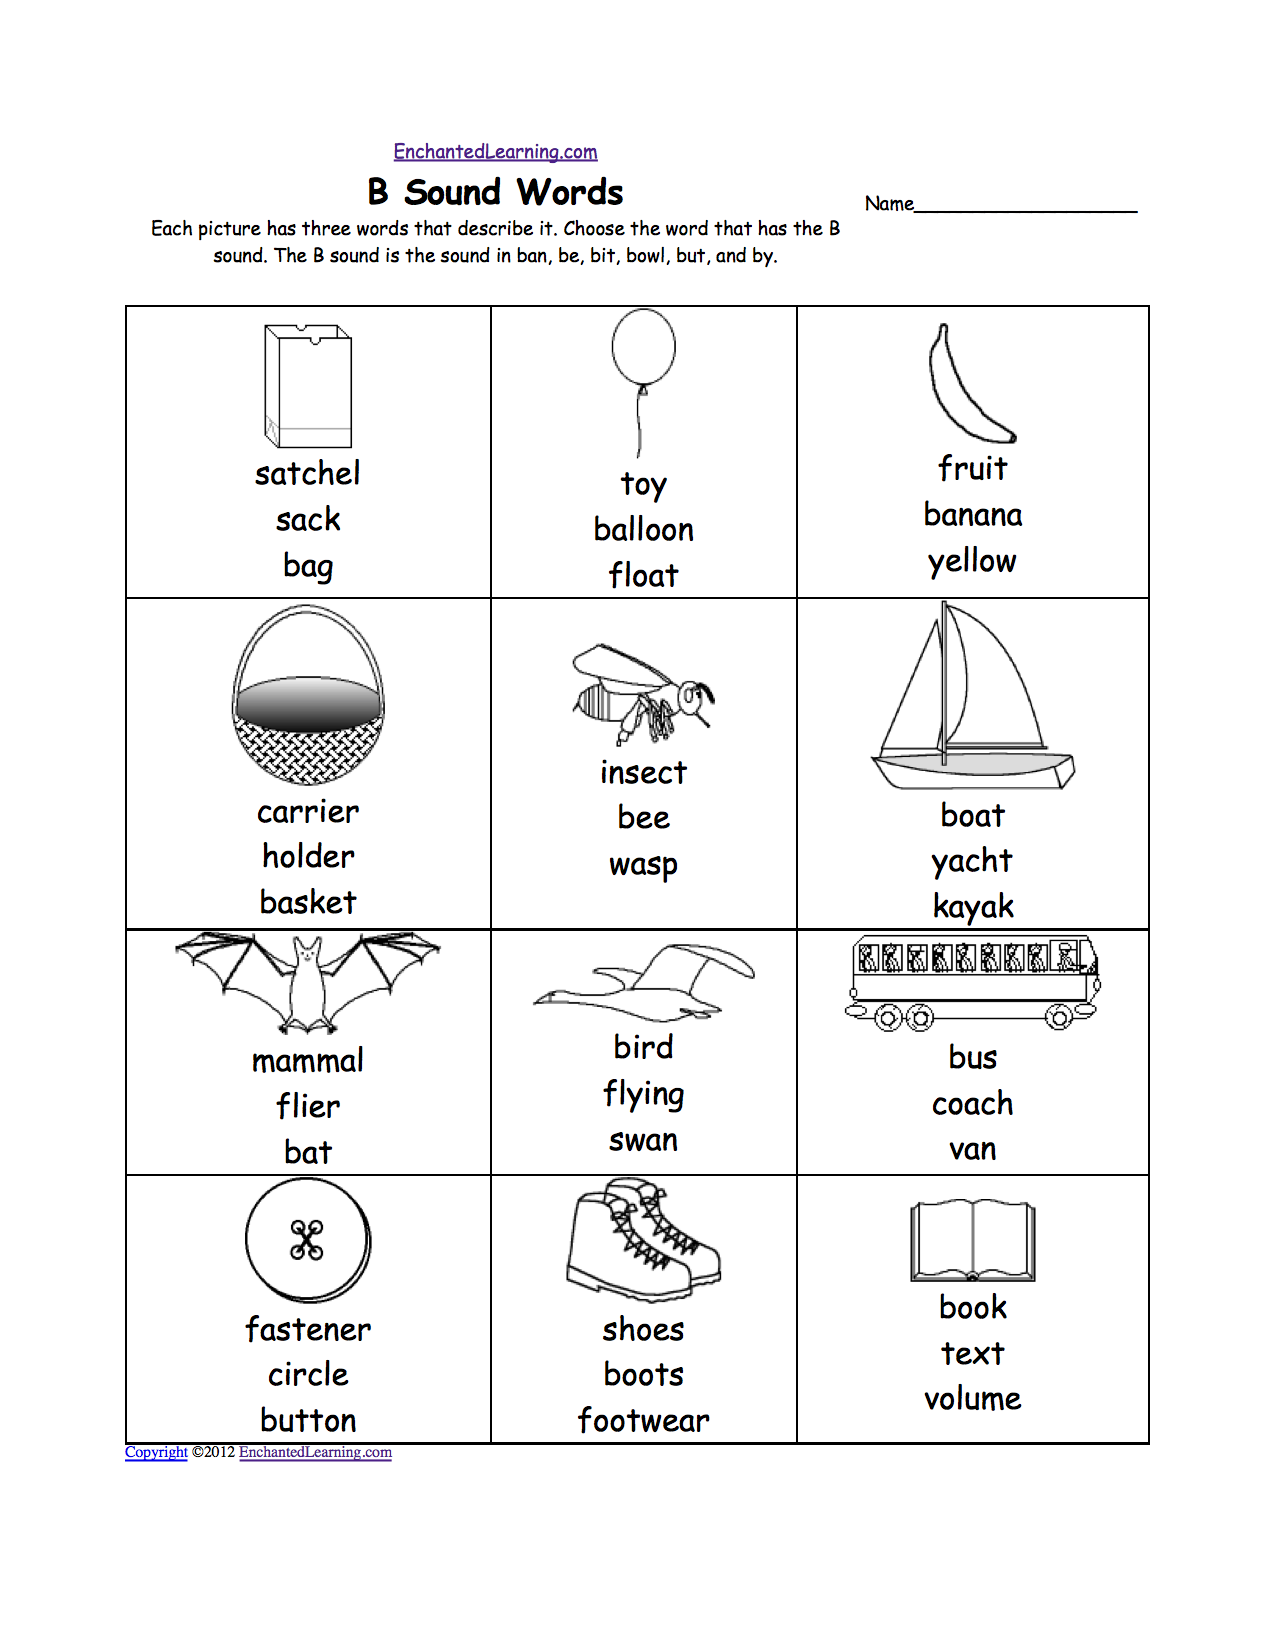 Weirdmailus  Stunning Phonics Worksheets Multiple Choice Worksheets To Print  With Outstanding Quotbquot Sound Phonics Worksheet Multiple Choice Each Picture Has Three Words That Describe It Choose The Word That Has A Quotbquot Sound The Quotbquot Sound Is The Sound  With Charming  Square Writing Worksheets Also Finding The Area Of Shapes Worksheet In Addition Roman History Worksheets And Their There Worksheet As Well As Printable Grade  Math Worksheets Additionally Fraction Games Worksheets From Enchantedlearningcom With Weirdmailus  Outstanding Phonics Worksheets Multiple Choice Worksheets To Print  With Charming Quotbquot Sound Phonics Worksheet Multiple Choice Each Picture Has Three Words That Describe It Choose The Word That Has A Quotbquot Sound The Quotbquot Sound Is The Sound  And Stunning  Square Writing Worksheets Also Finding The Area Of Shapes Worksheet In Addition Roman History Worksheets From Enchantedlearningcom